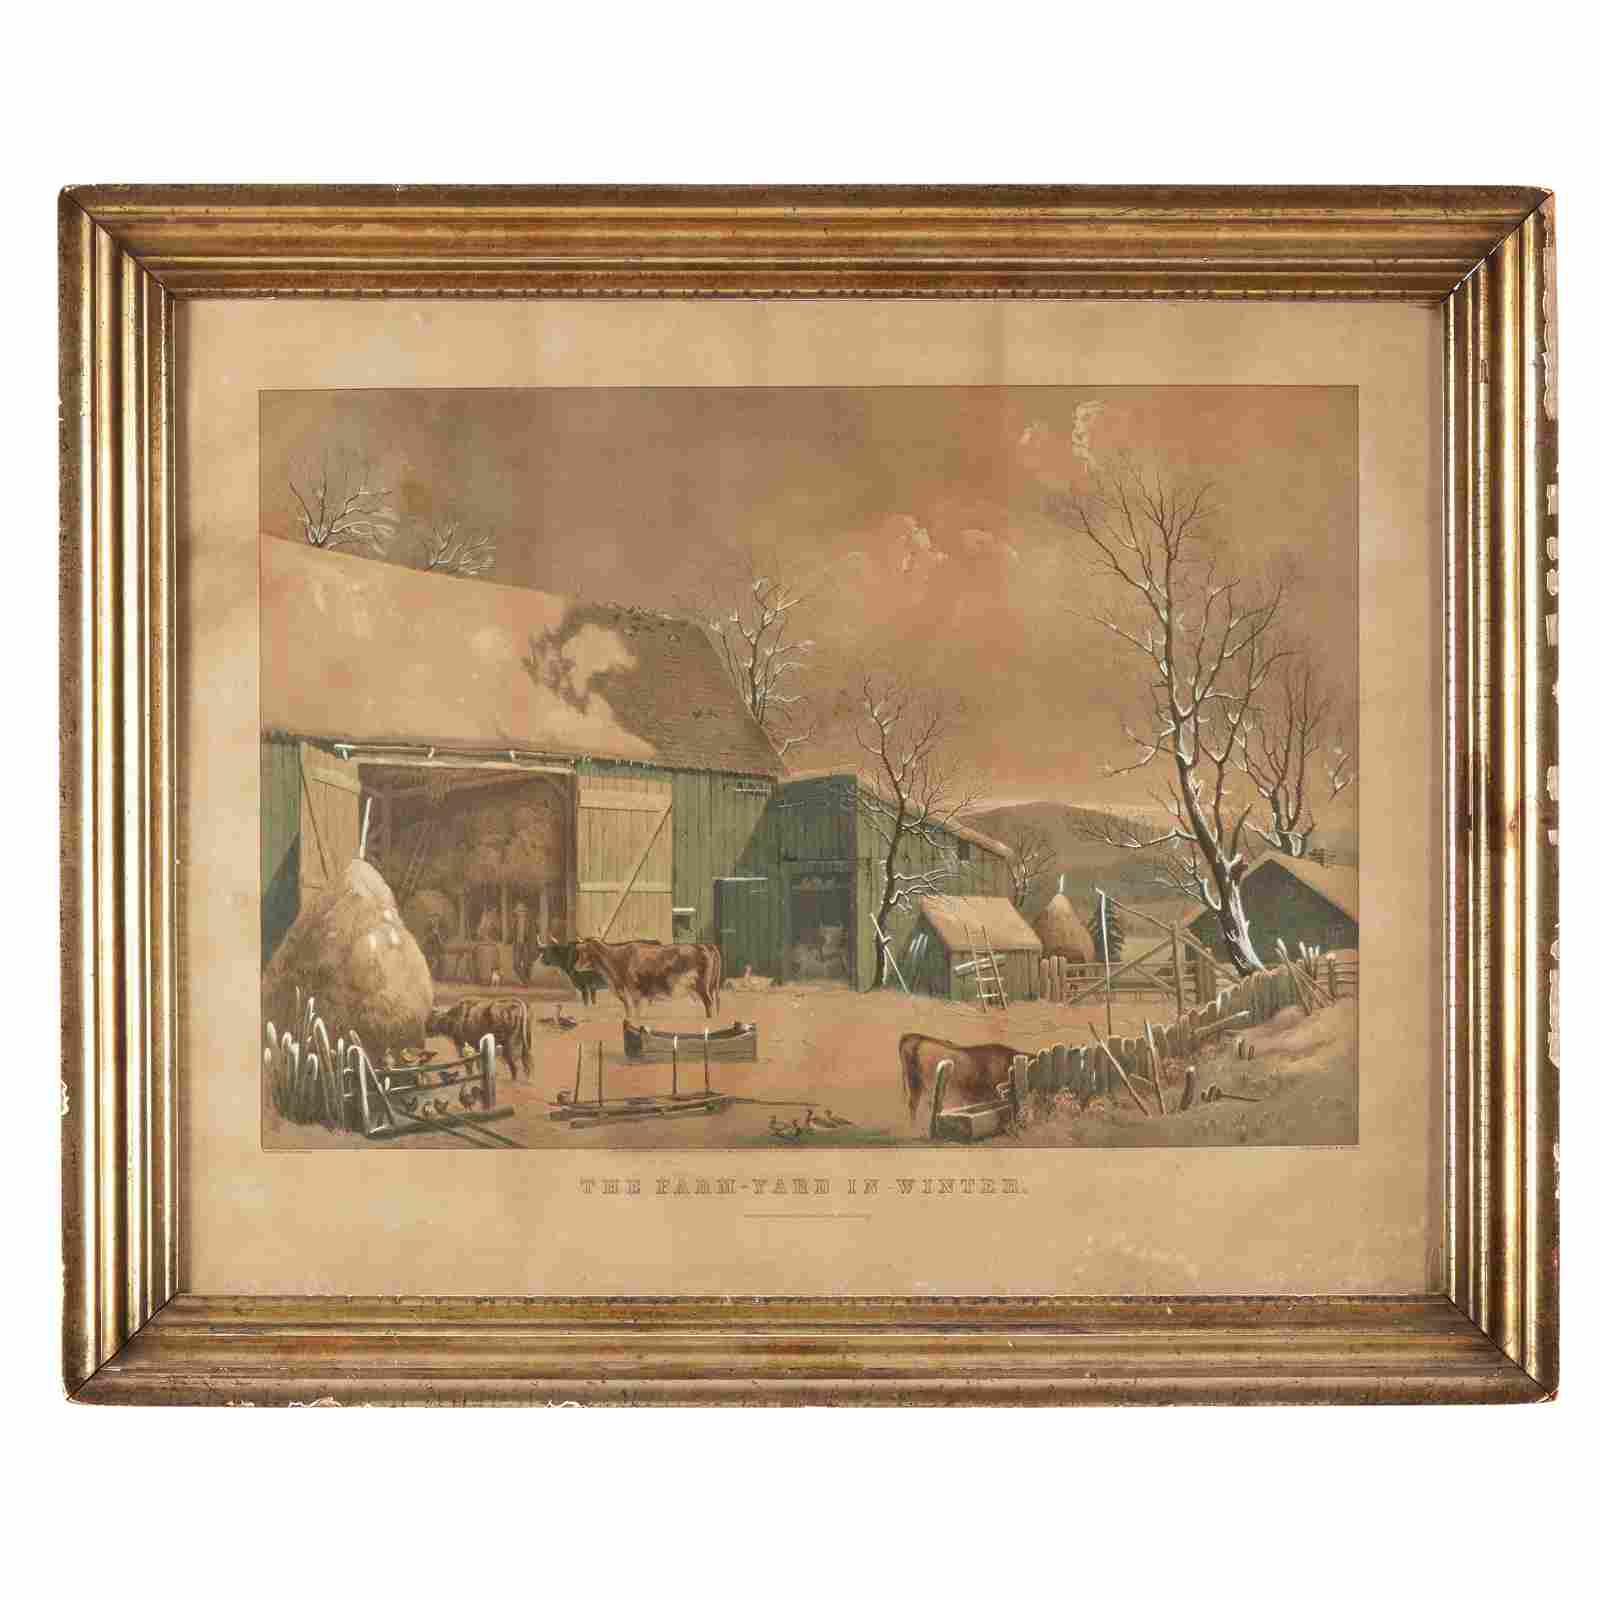 [Prints] Currier & Ives, The Farm-Yard in Winter